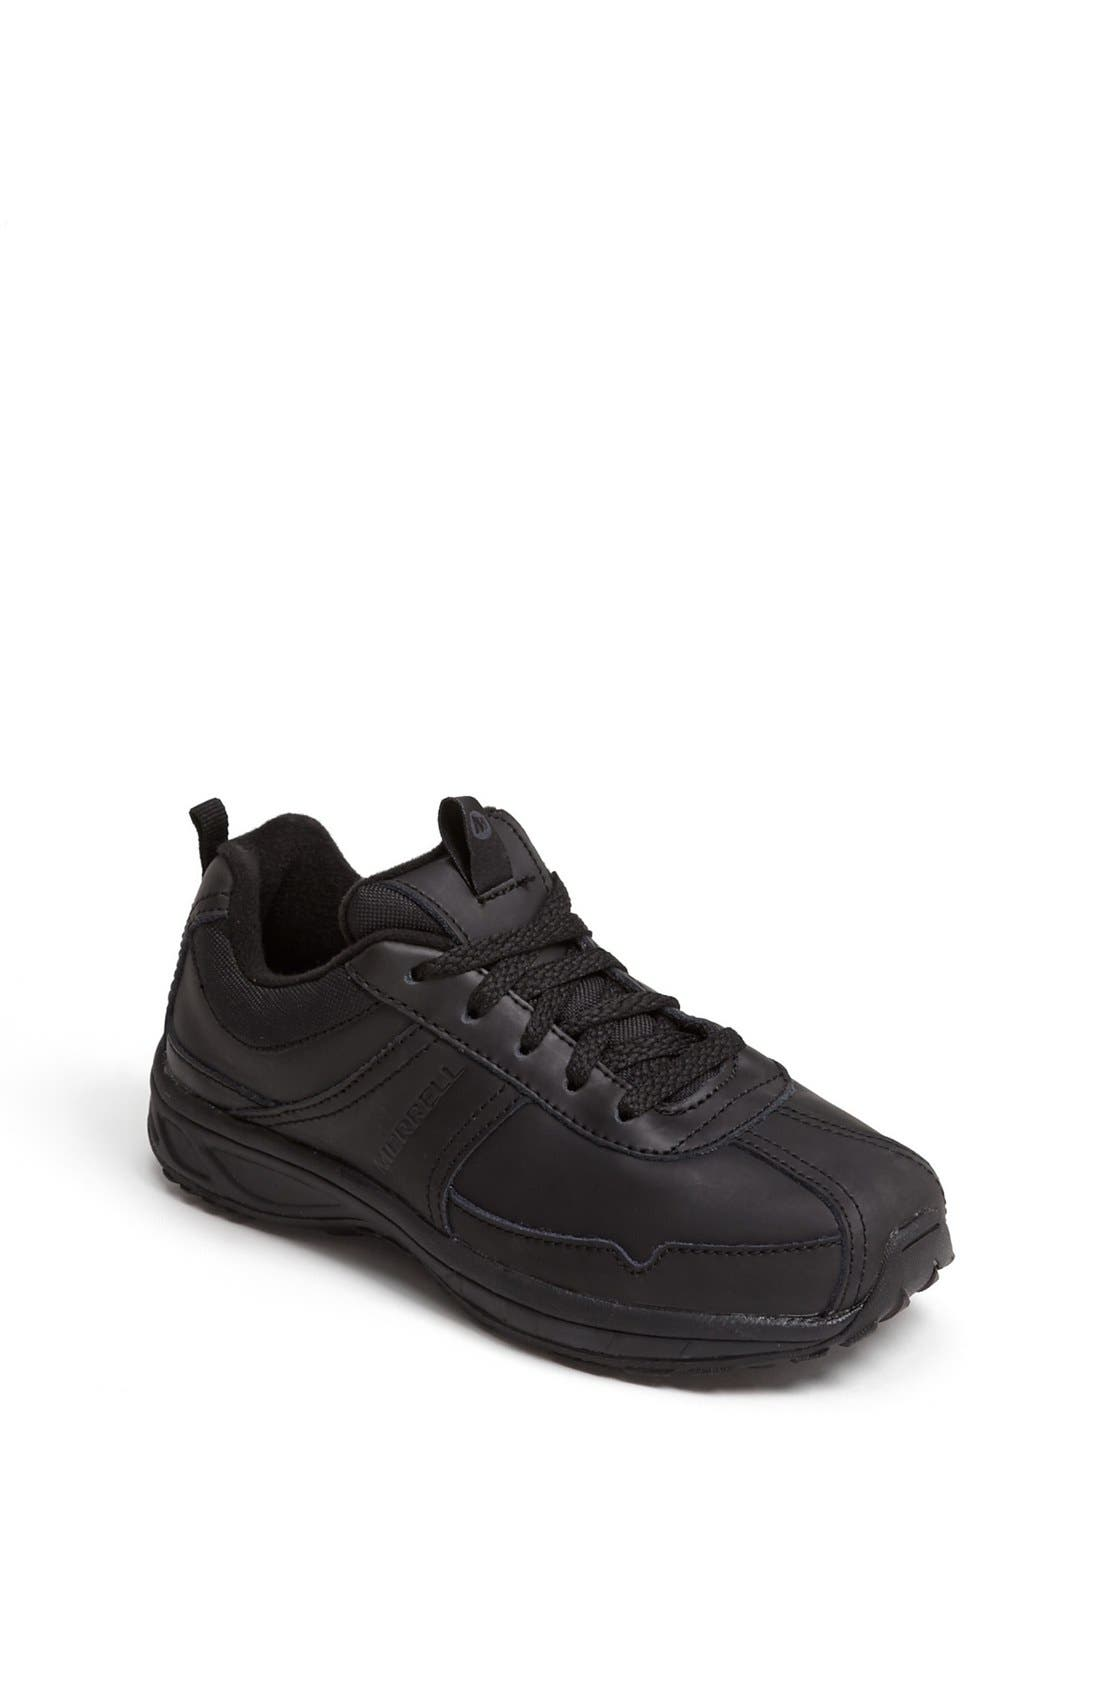 Alternate Image 1 Selected - Merrell 'Orbiteer' Sneaker (Toddler, Little Kid & Big Kid)